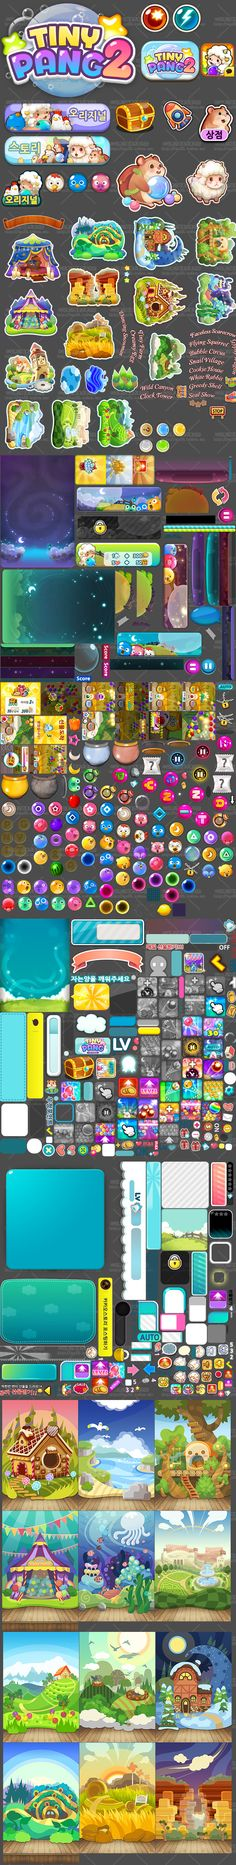 Game Gui, Game Icon, Interface Design, User Interface, Game Concept, Concept Art, Game Design, Ui Design, Ui Buttons